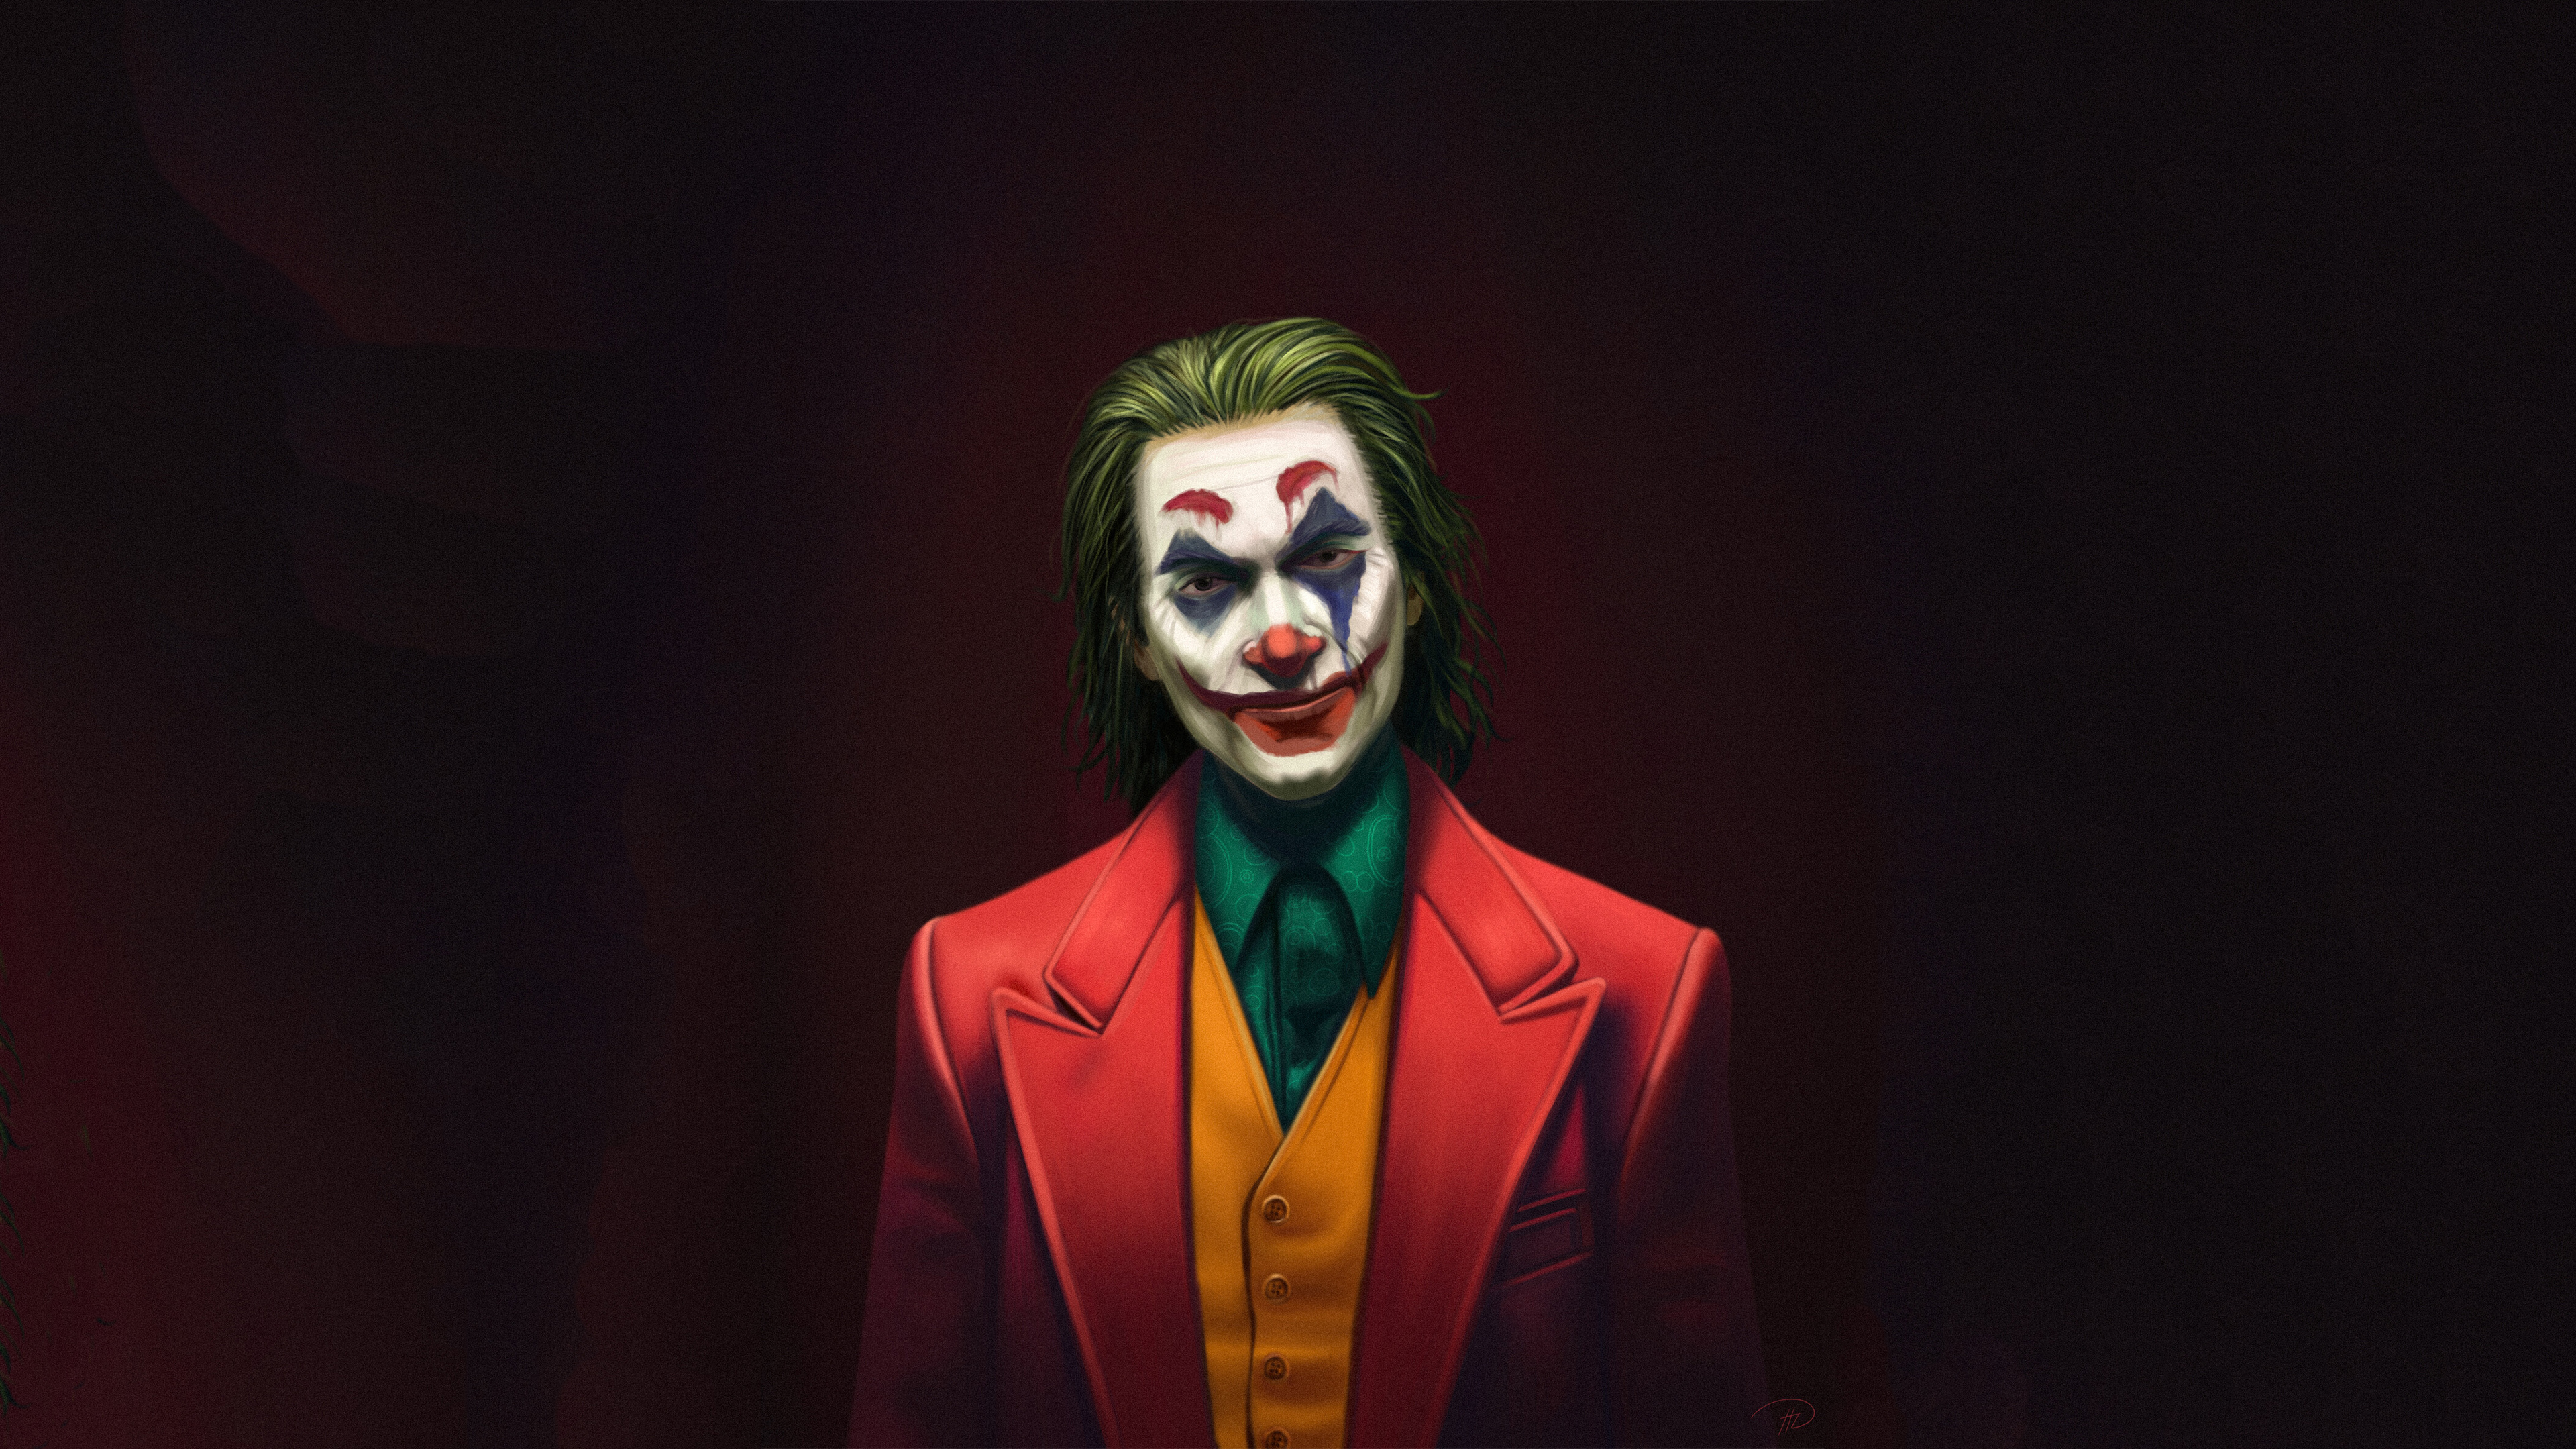 joker movie joaquin phoenix art 1570918974 - Joker Movie Joaquin Phoenix Art - supervillain wallpapers, superheroes wallpapers, joker wallpapers, joker movie wallpapers, hd-wallpapers, artwork wallpapers, 4k-wallpapers